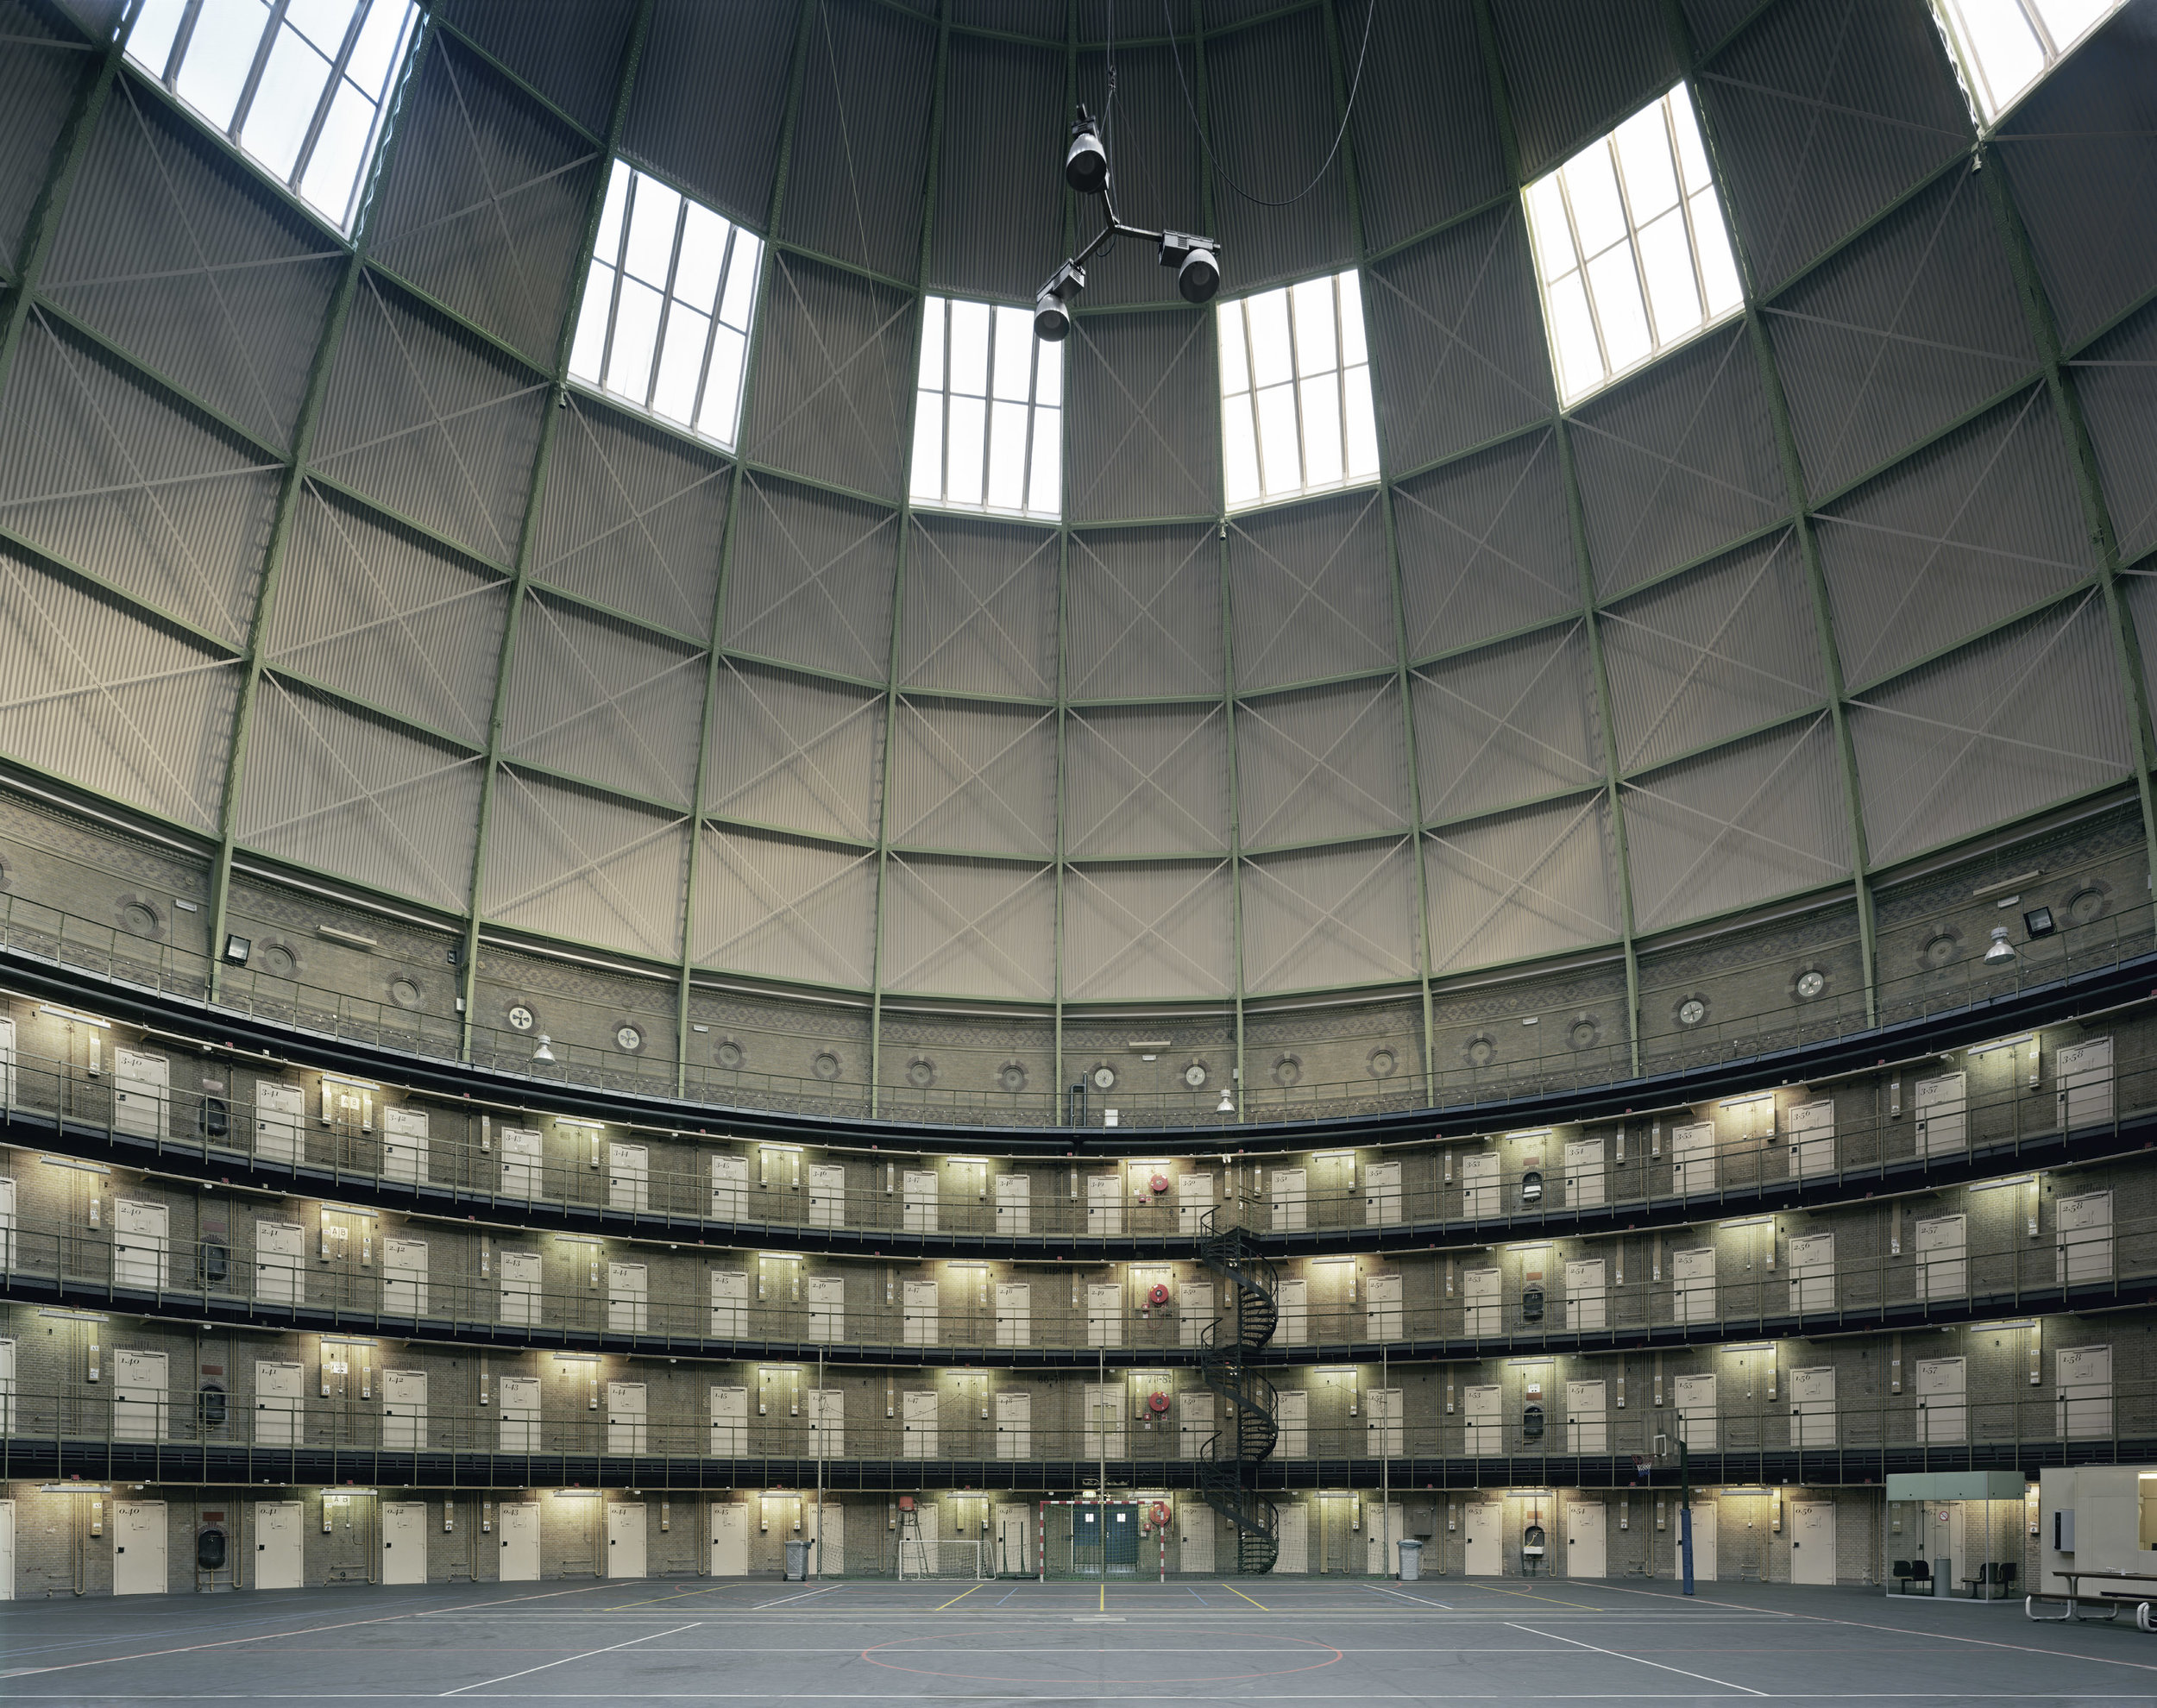 Haarlem Prison, Haarlem, Netherlands, 2009, by David Leventi. Fujicolor Crystal Archive print on Dibond of the interior and roof of the prison.